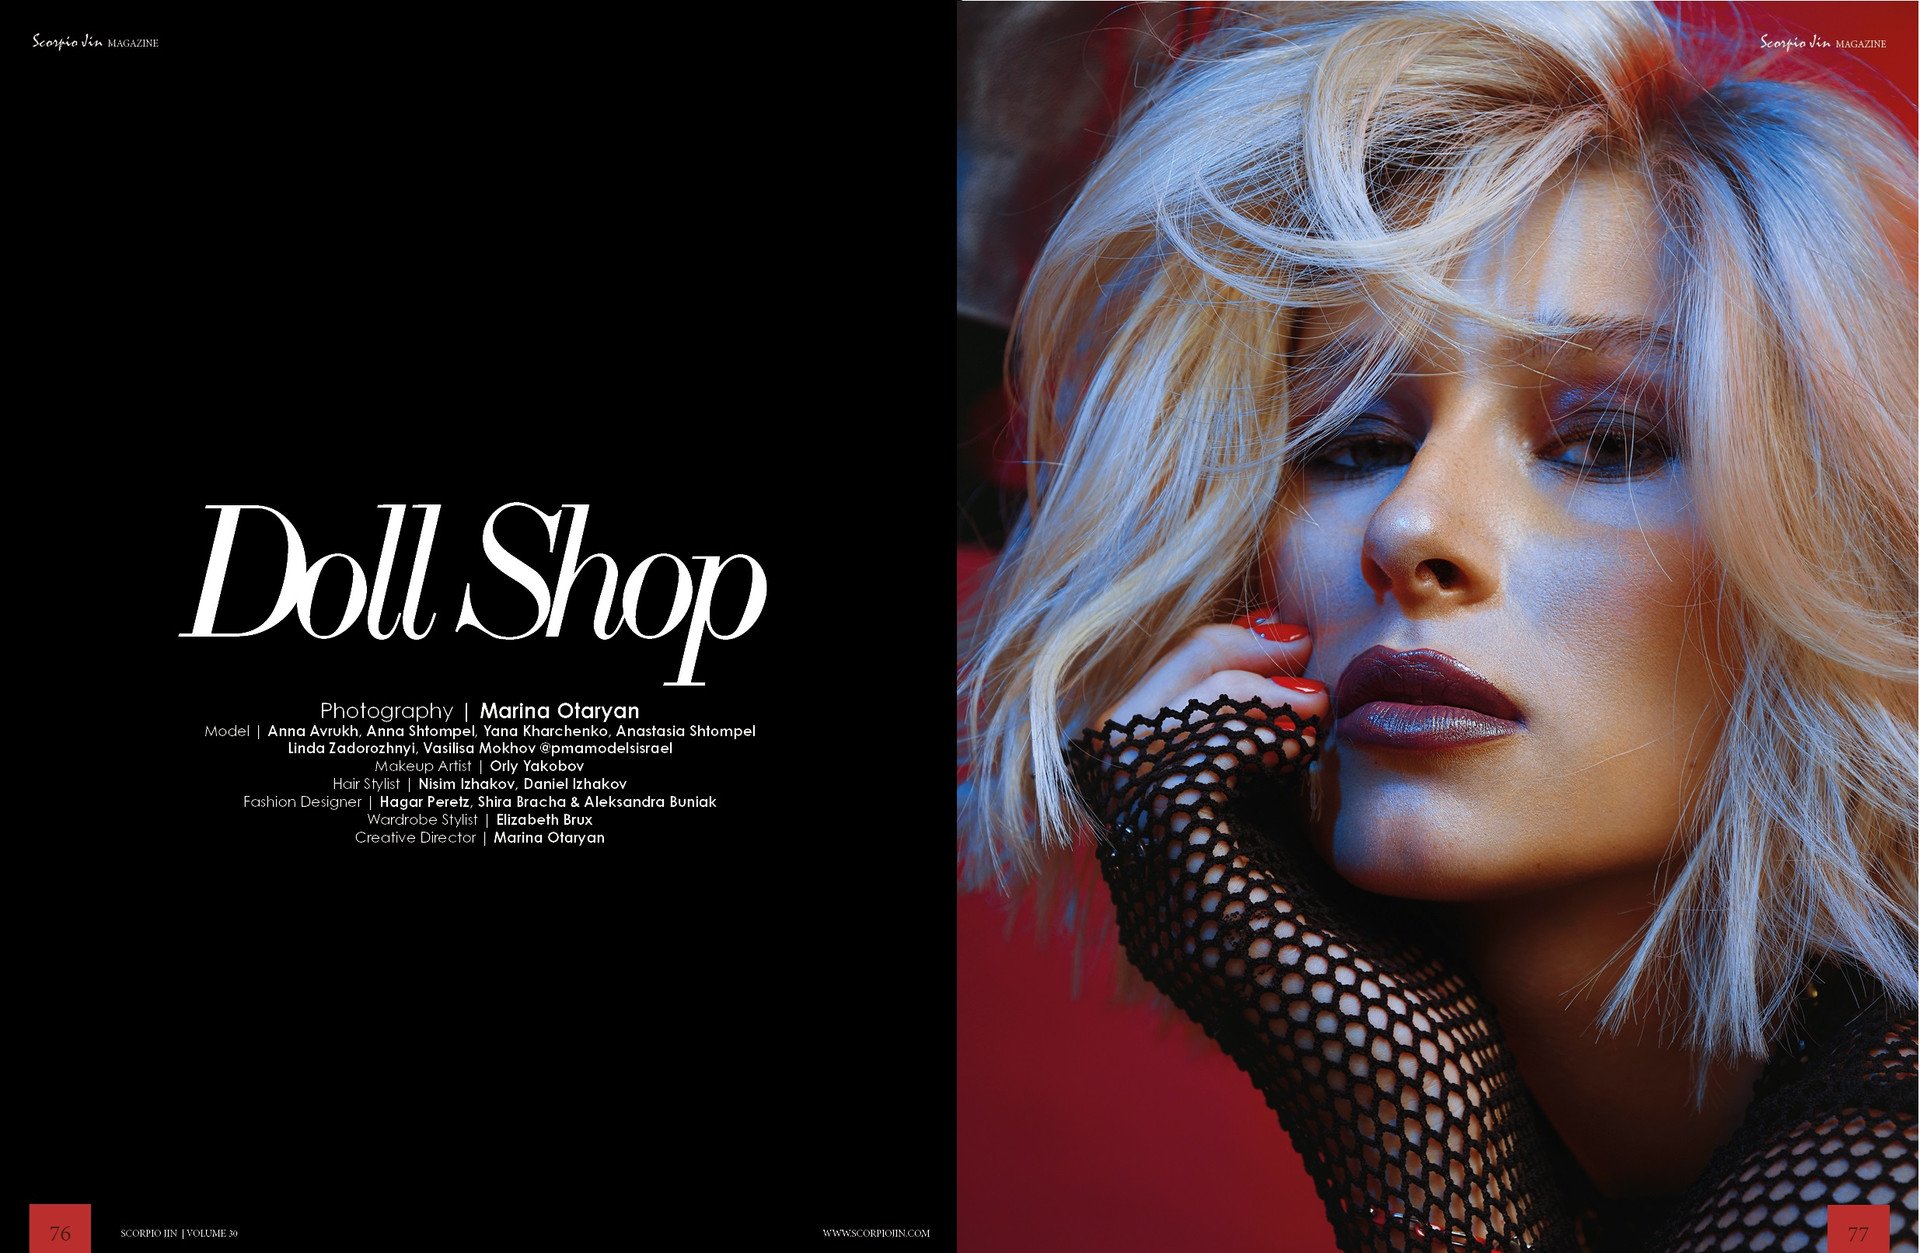 """Doll Shop"" for Scorpio Jin Magazine"